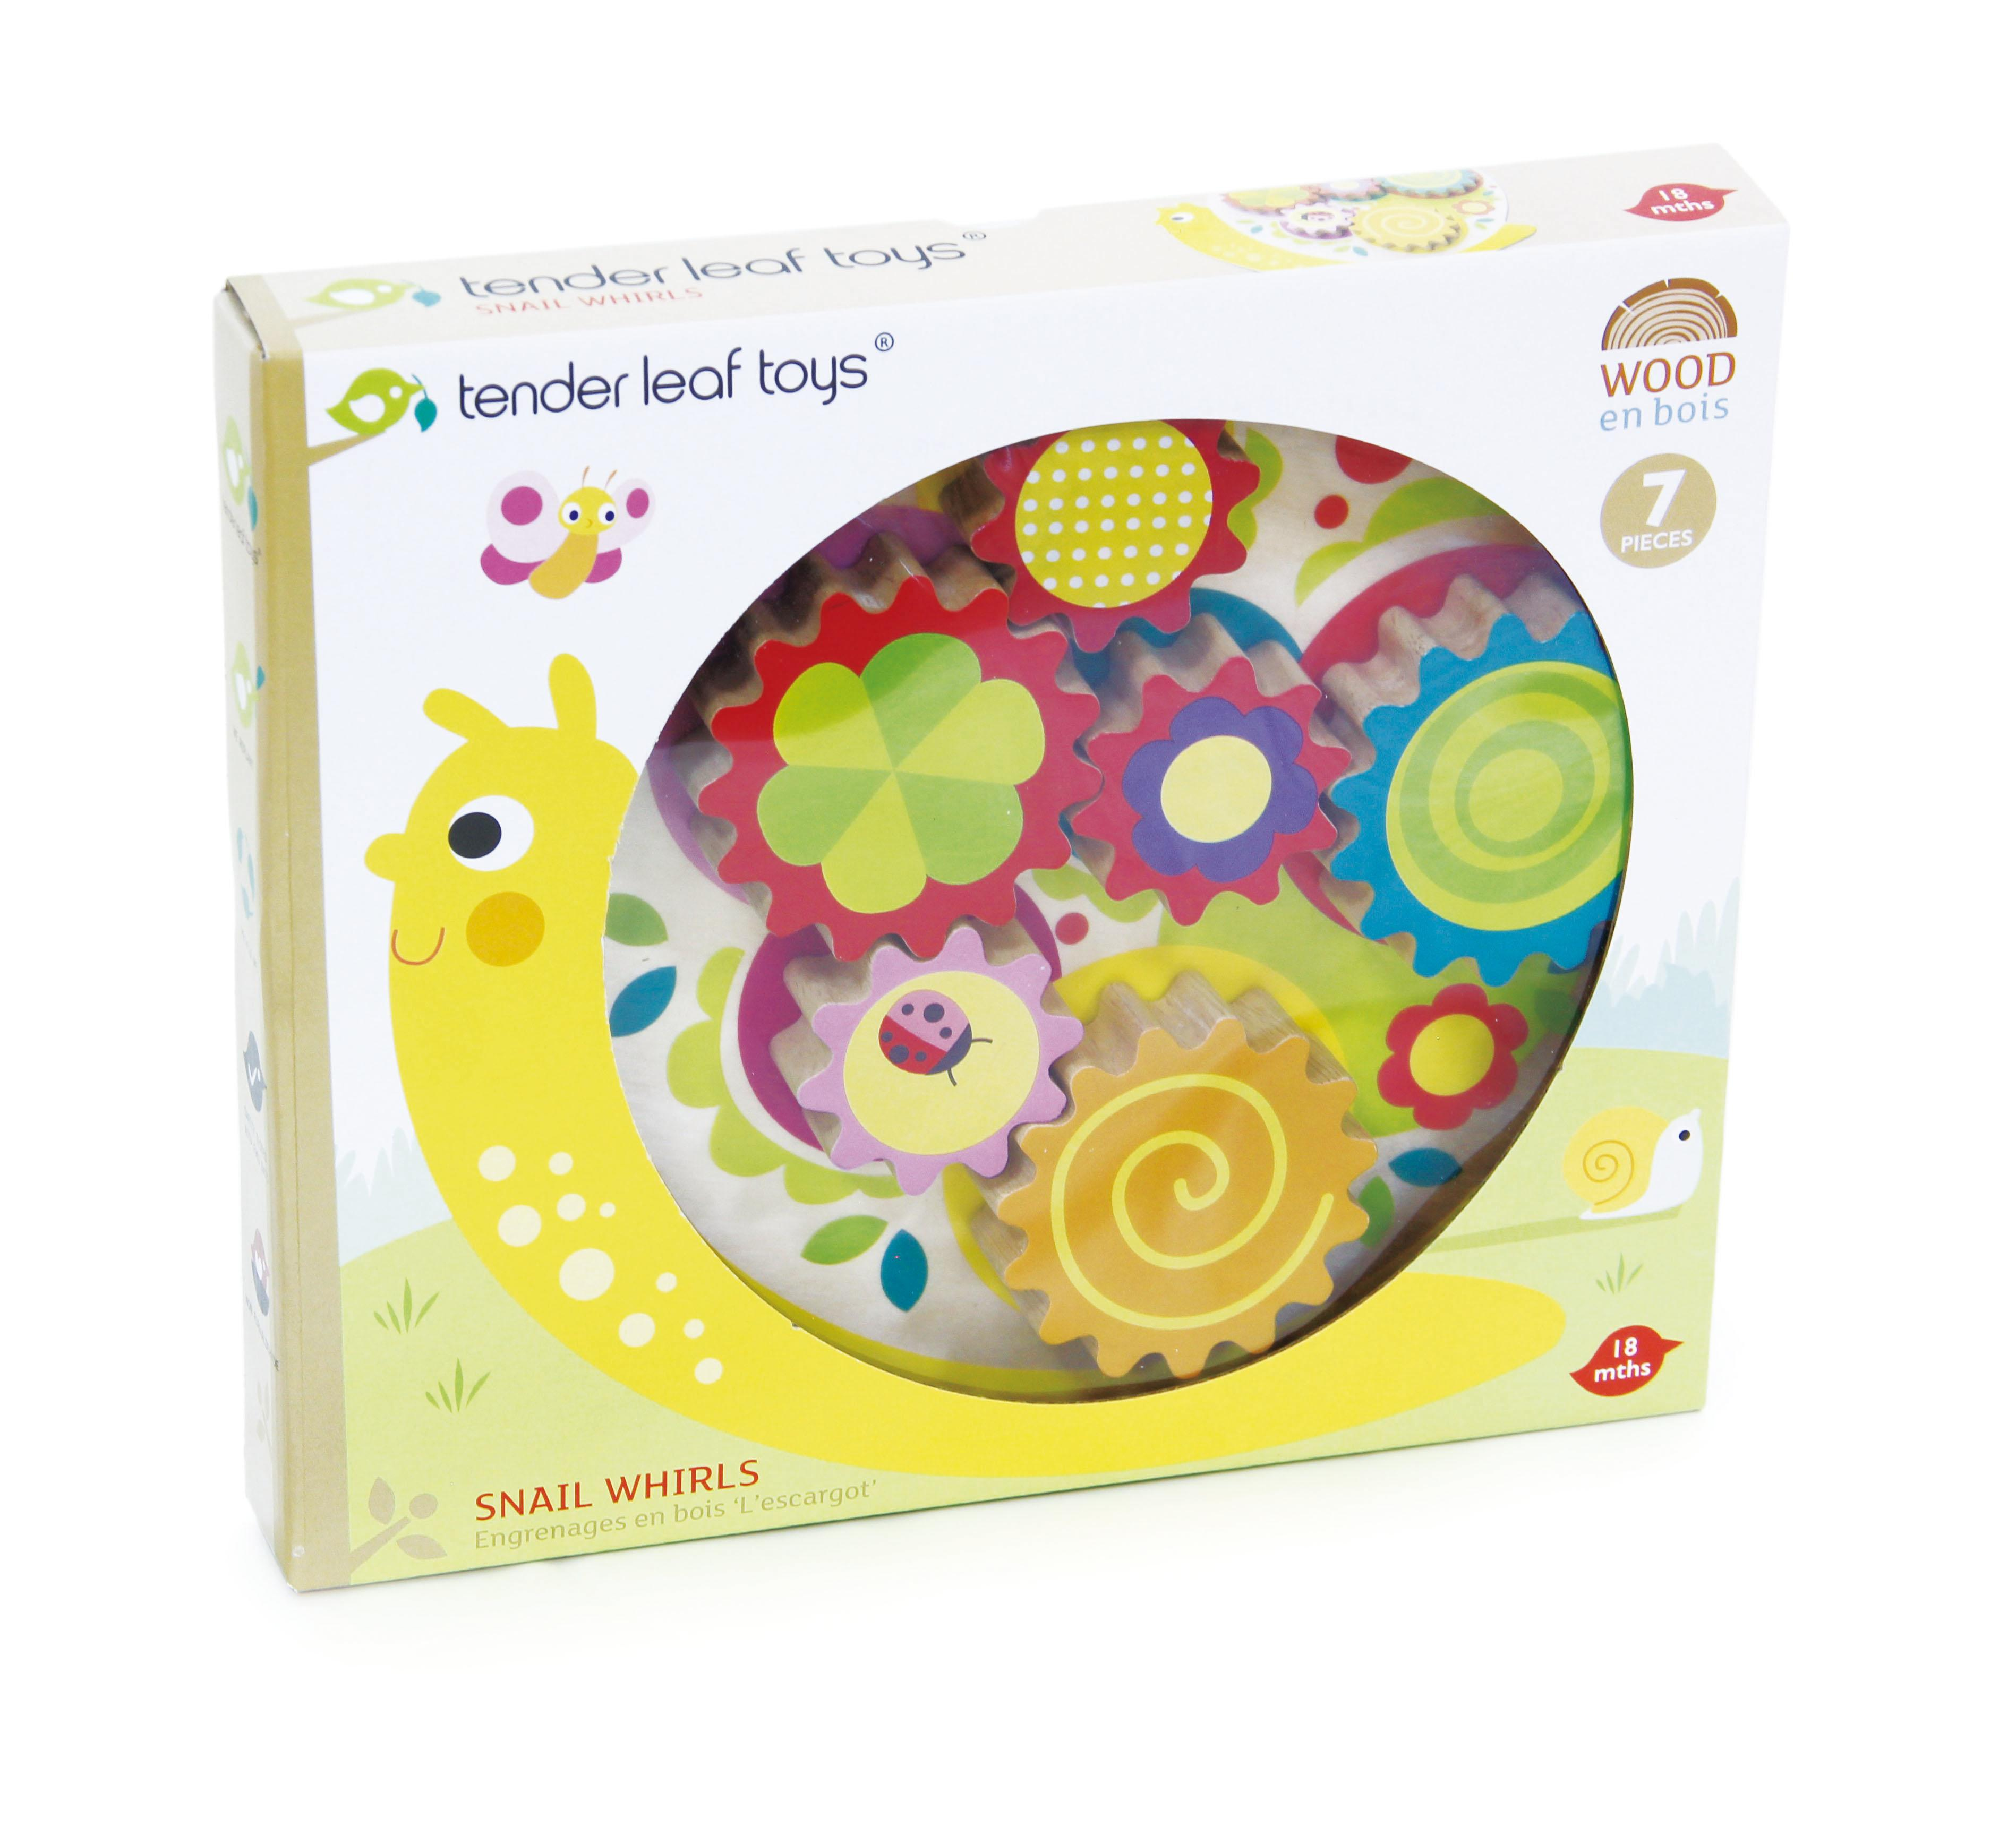 New Wooden Snail with 6 Placeable Colourful Cogs that Turn #4